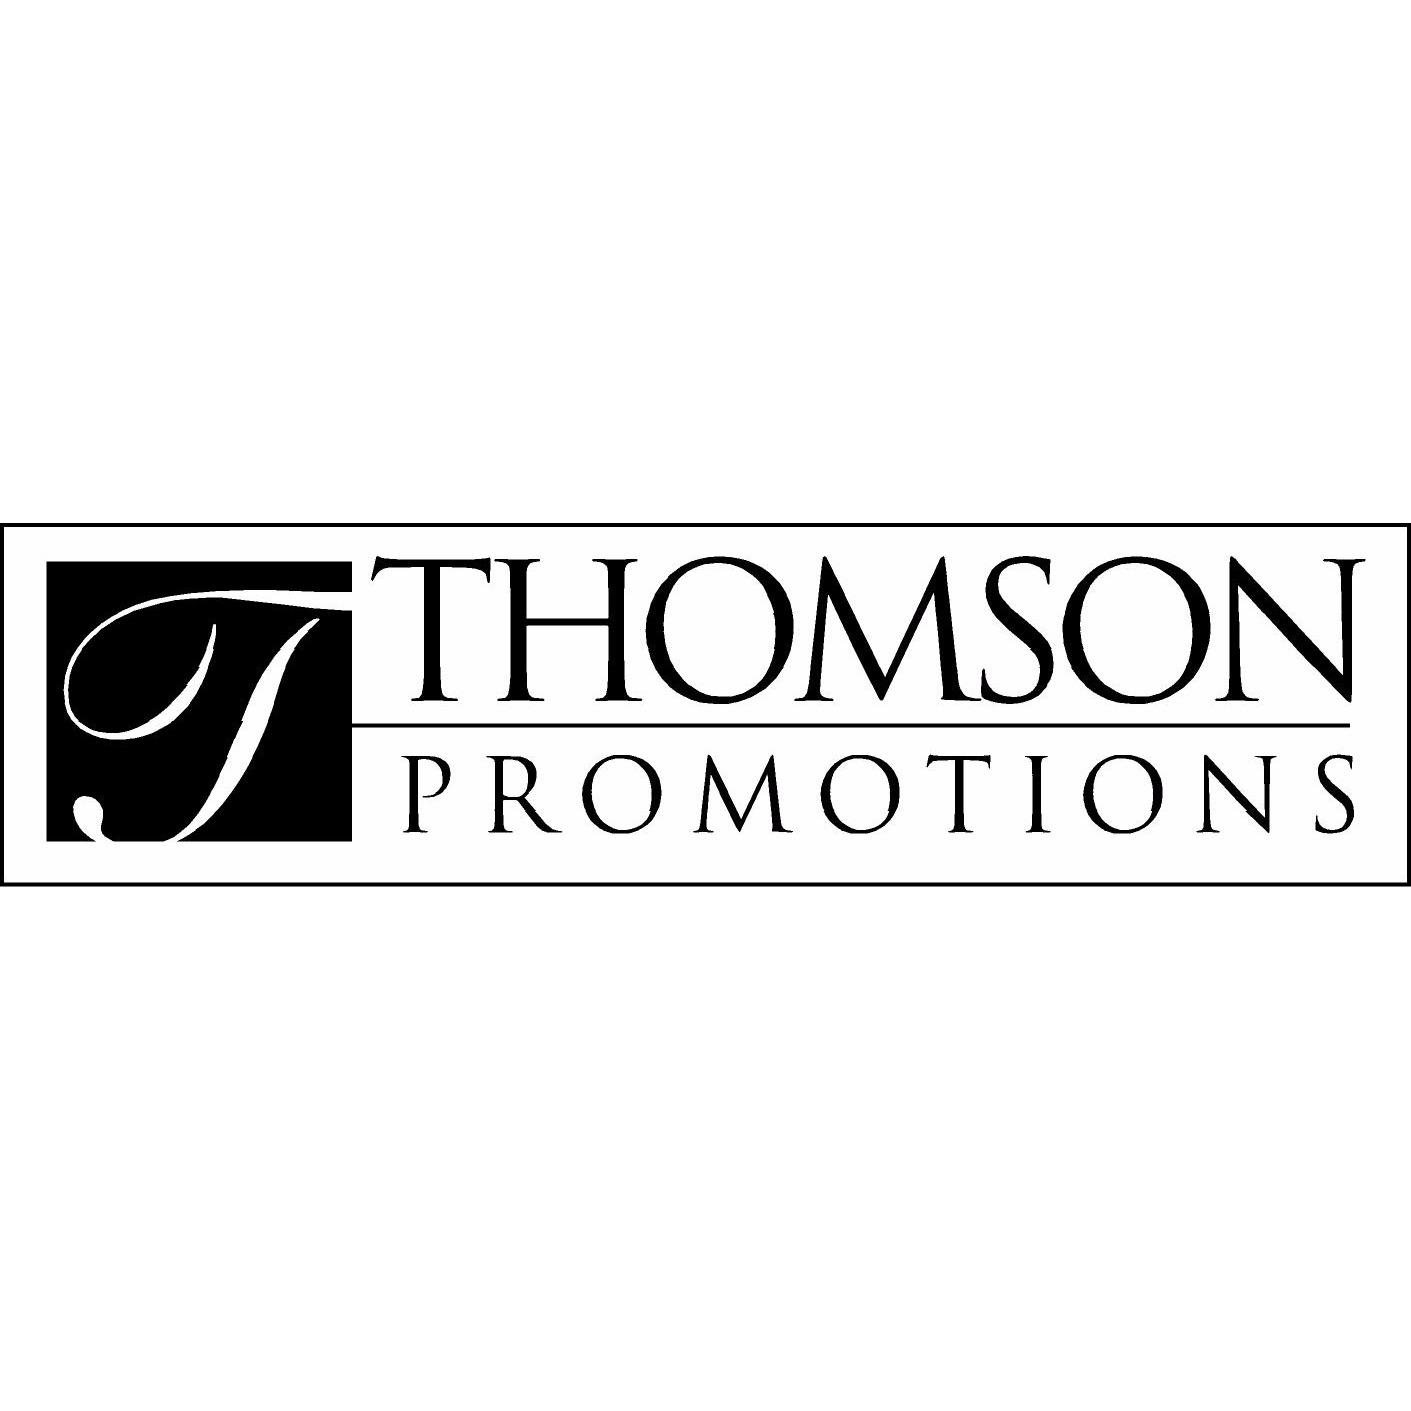 Thomson Promotions